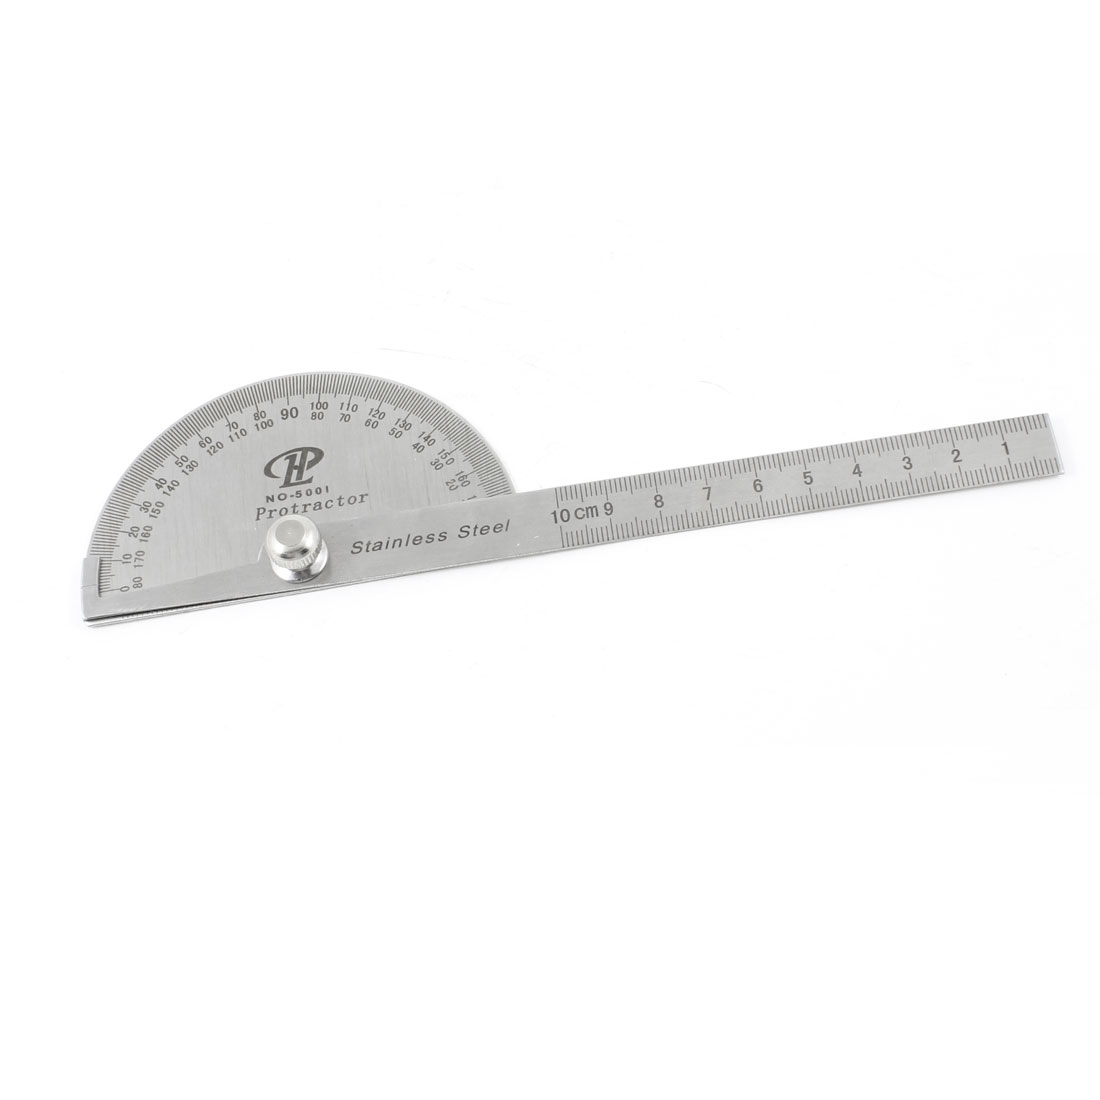 Stainless Steel Rotating 180 Degree Mesurement Protractor Metric 10cm Ruler